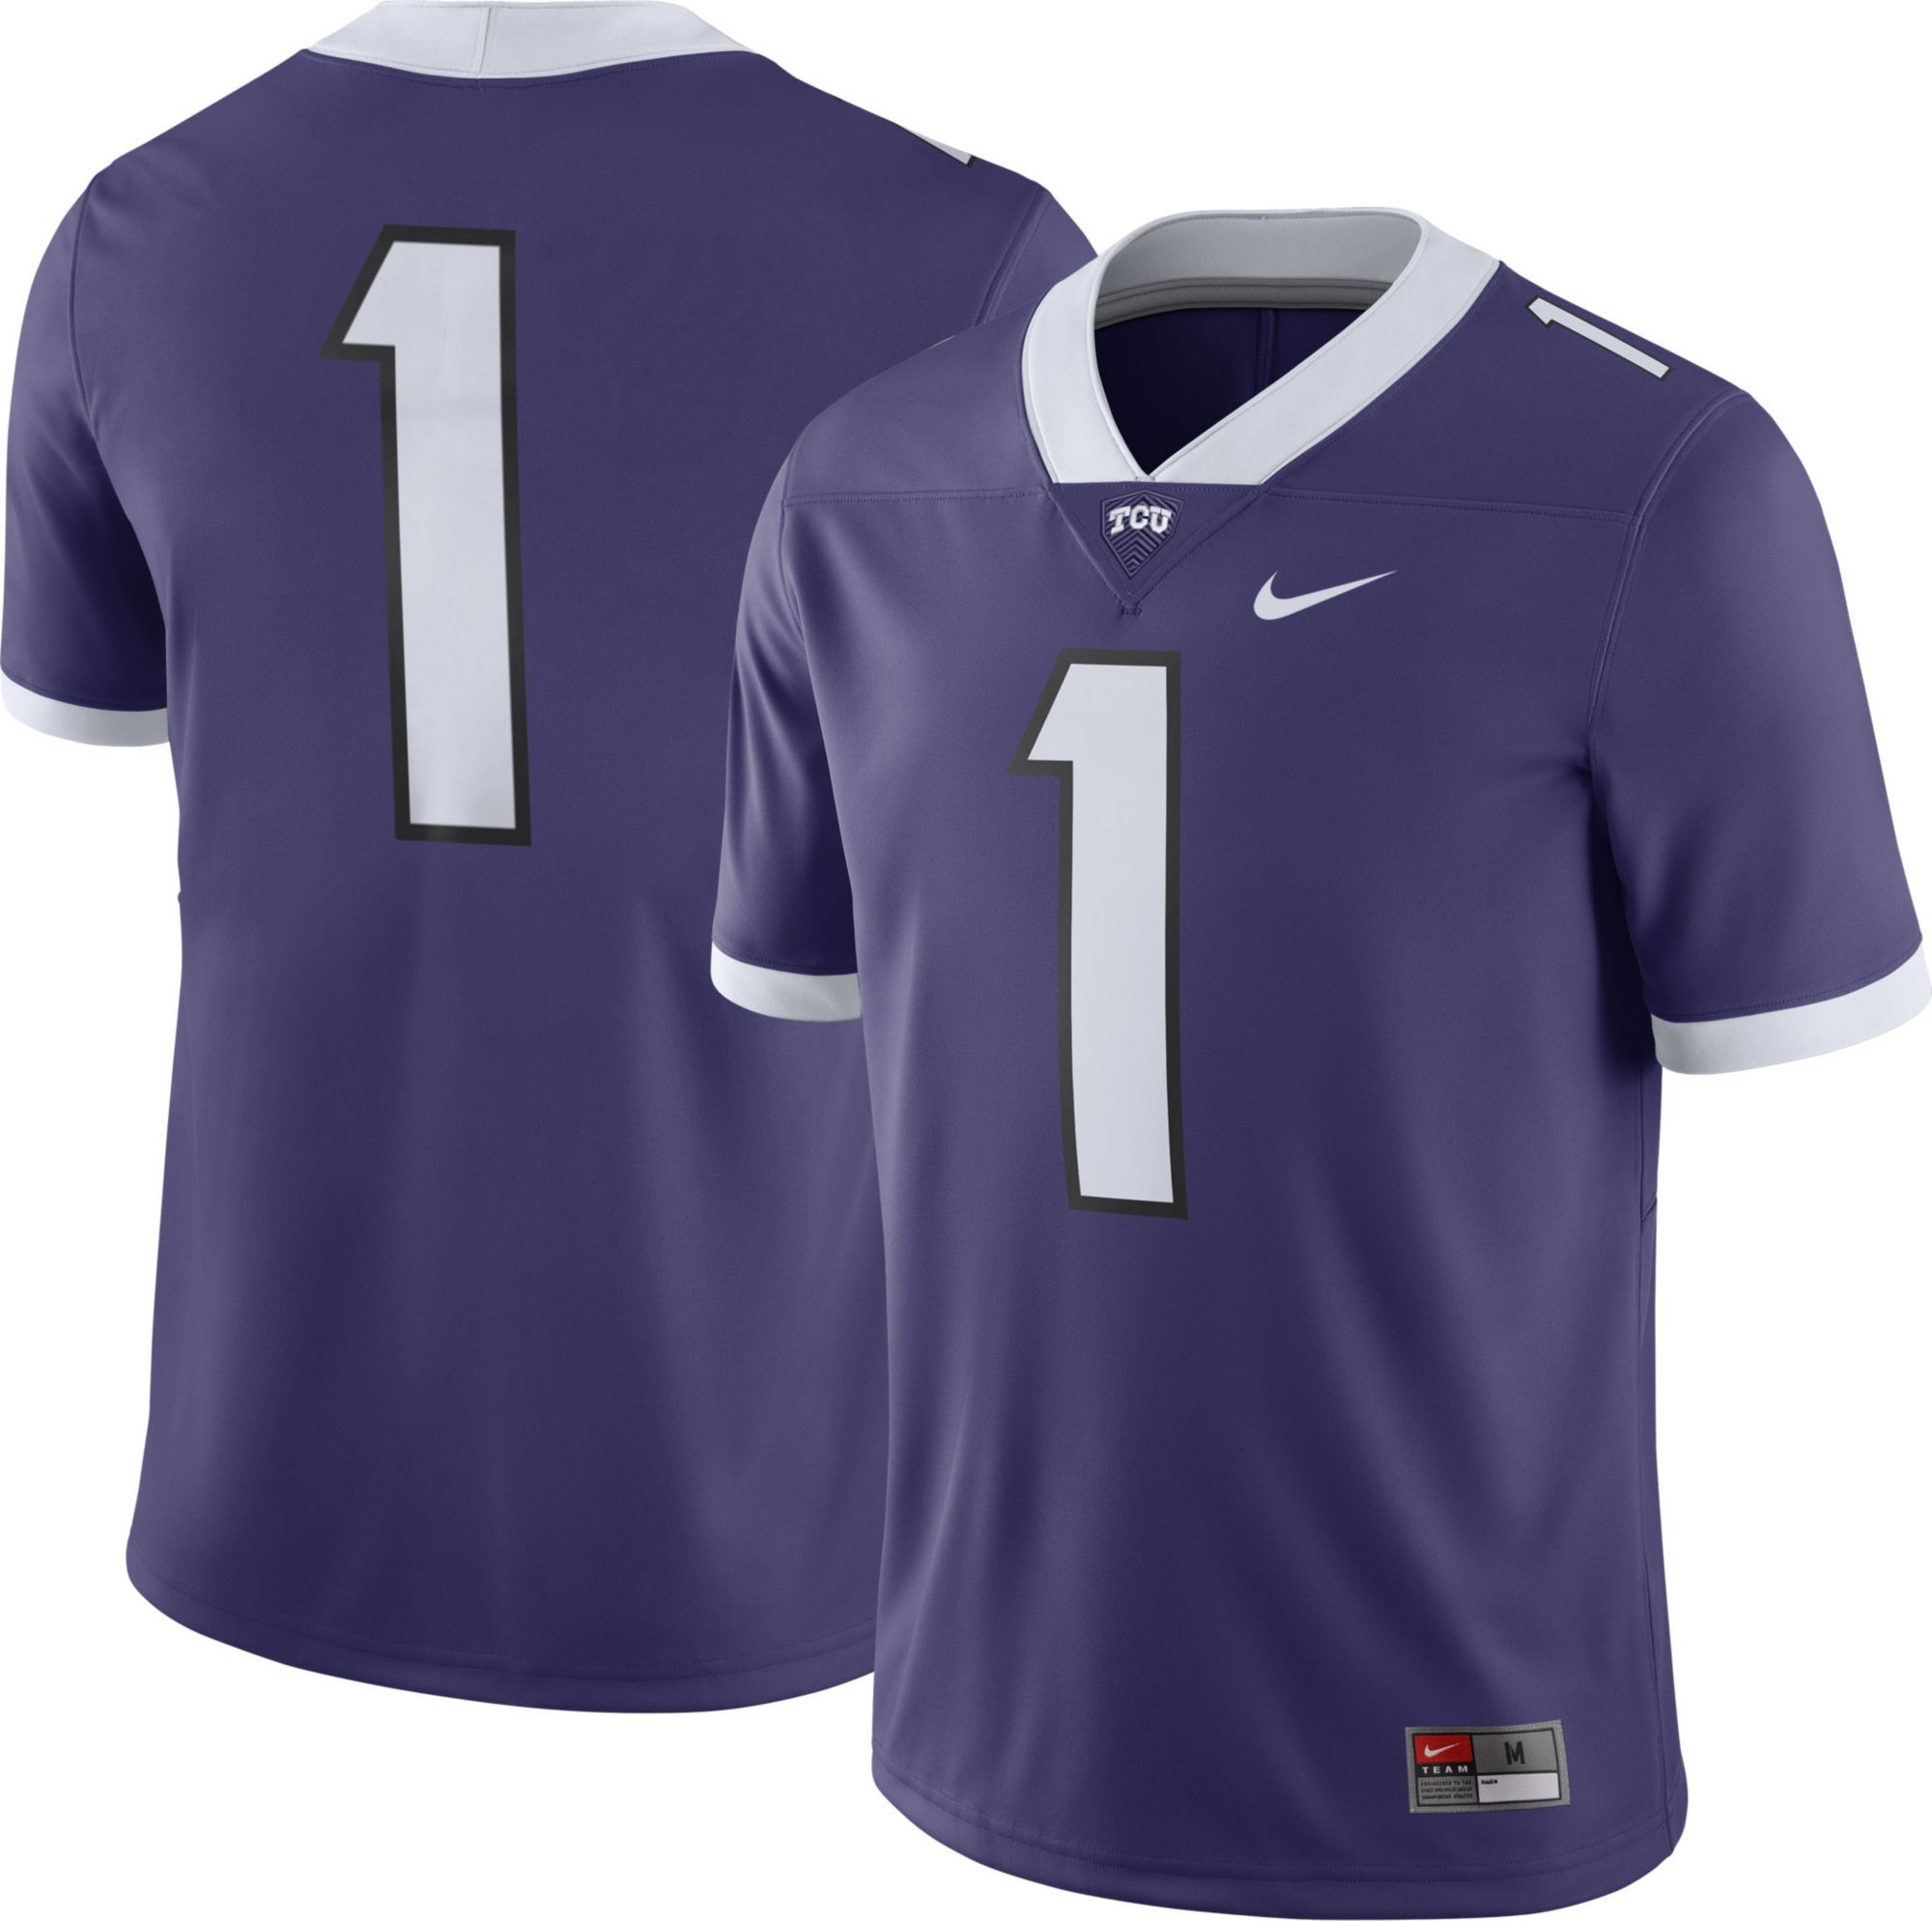 74891fb8341 Nike Men's TCU Horned Frogs #1 Purple Game Football Jersey ...